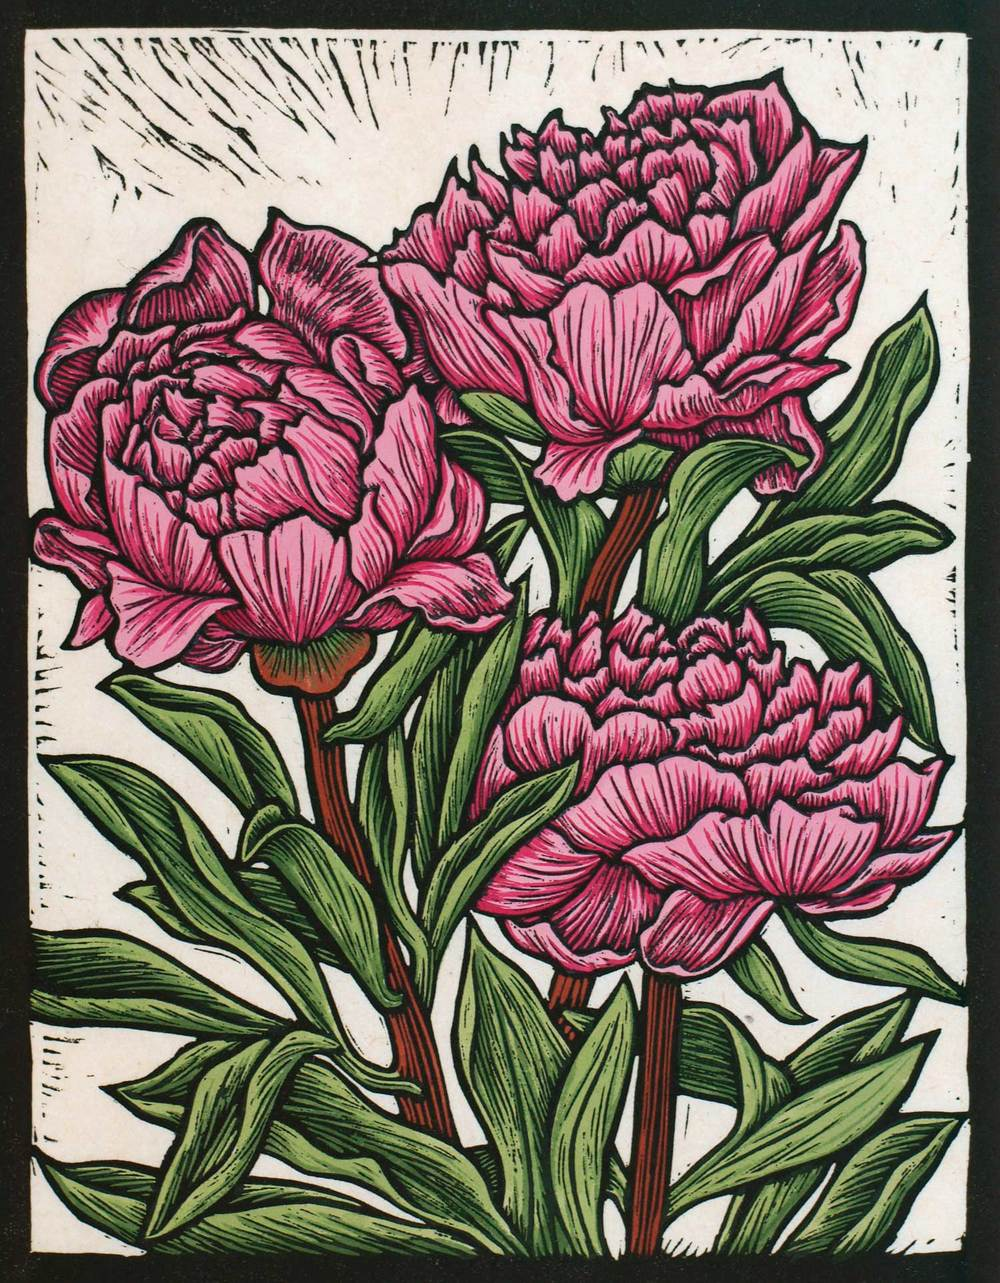 PEONY ROSE                                               29.5 X 23 CM    EDITION OF 50                         HAND COLOURED LINOCUT ON HANDMADE JAPANESE PAPER                $650